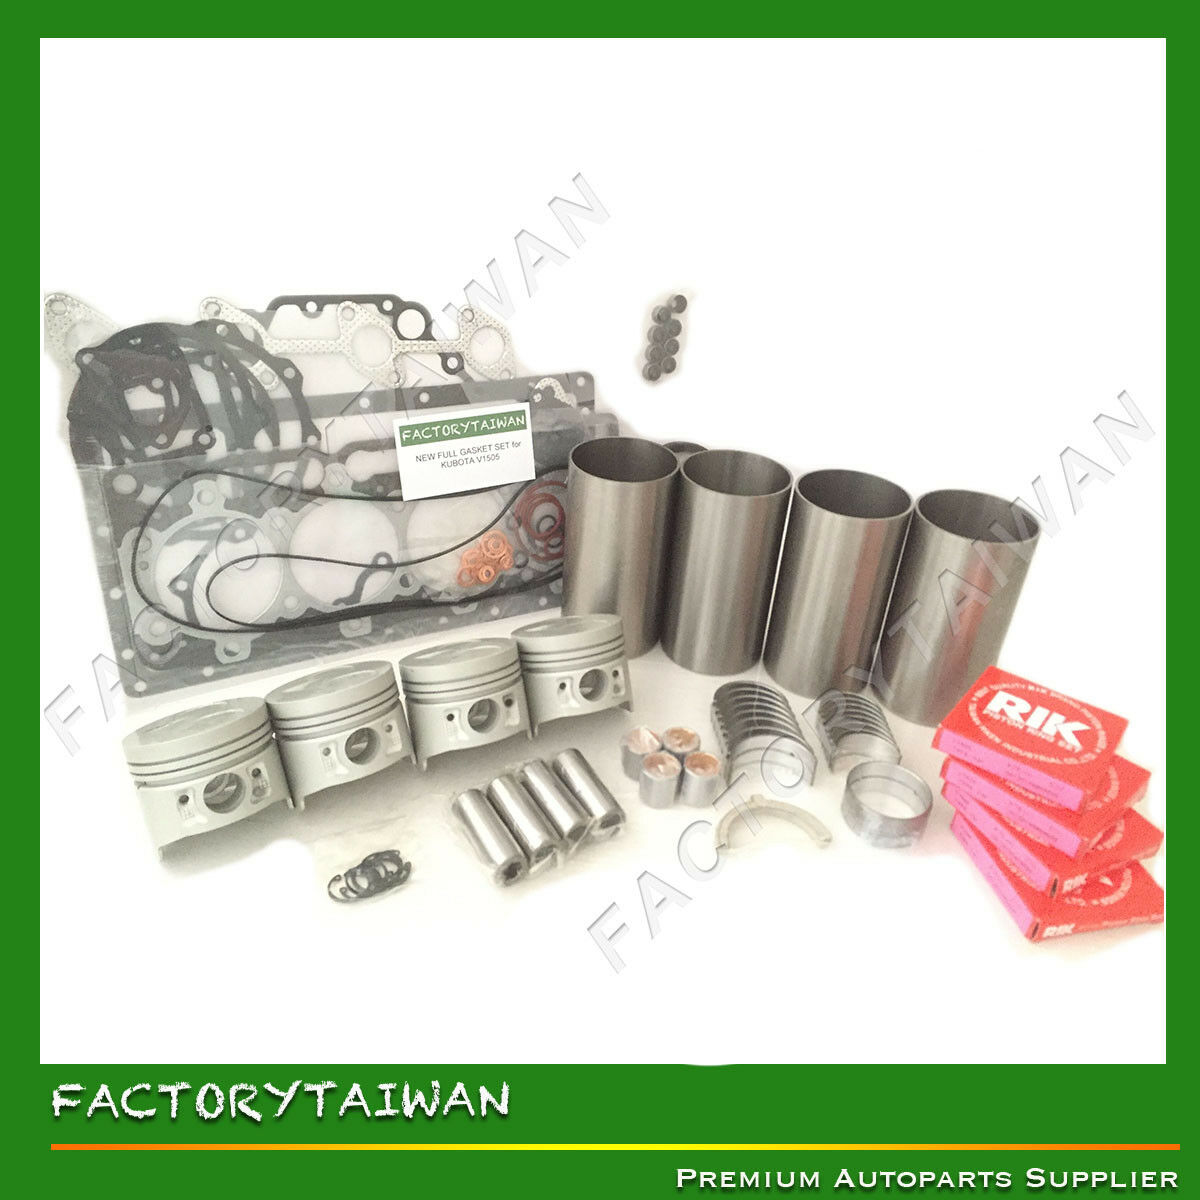 Details about Engine Overhaul Kit STD for KUBOTA V1505 - B2910HSD B3200HSD  B3300SU F3680 KX71H